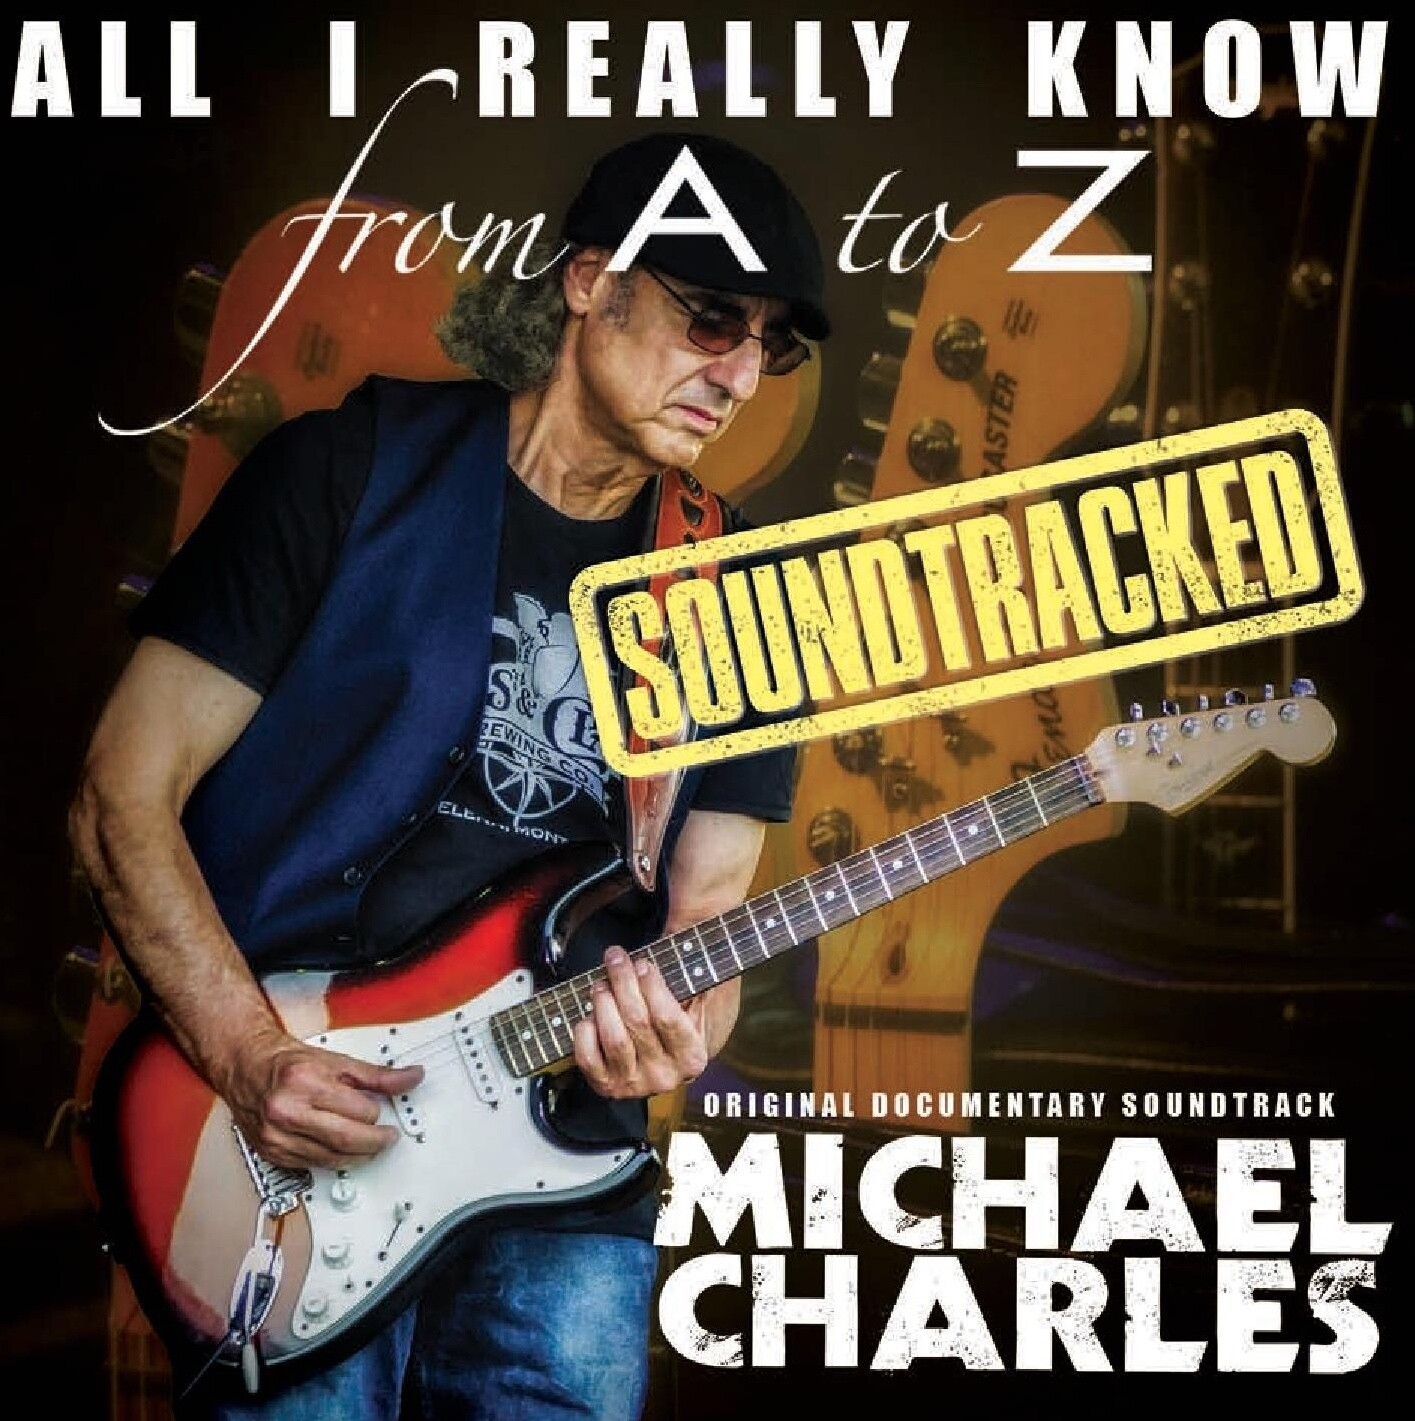 All I Really Know from A to Z [Soundtracked]